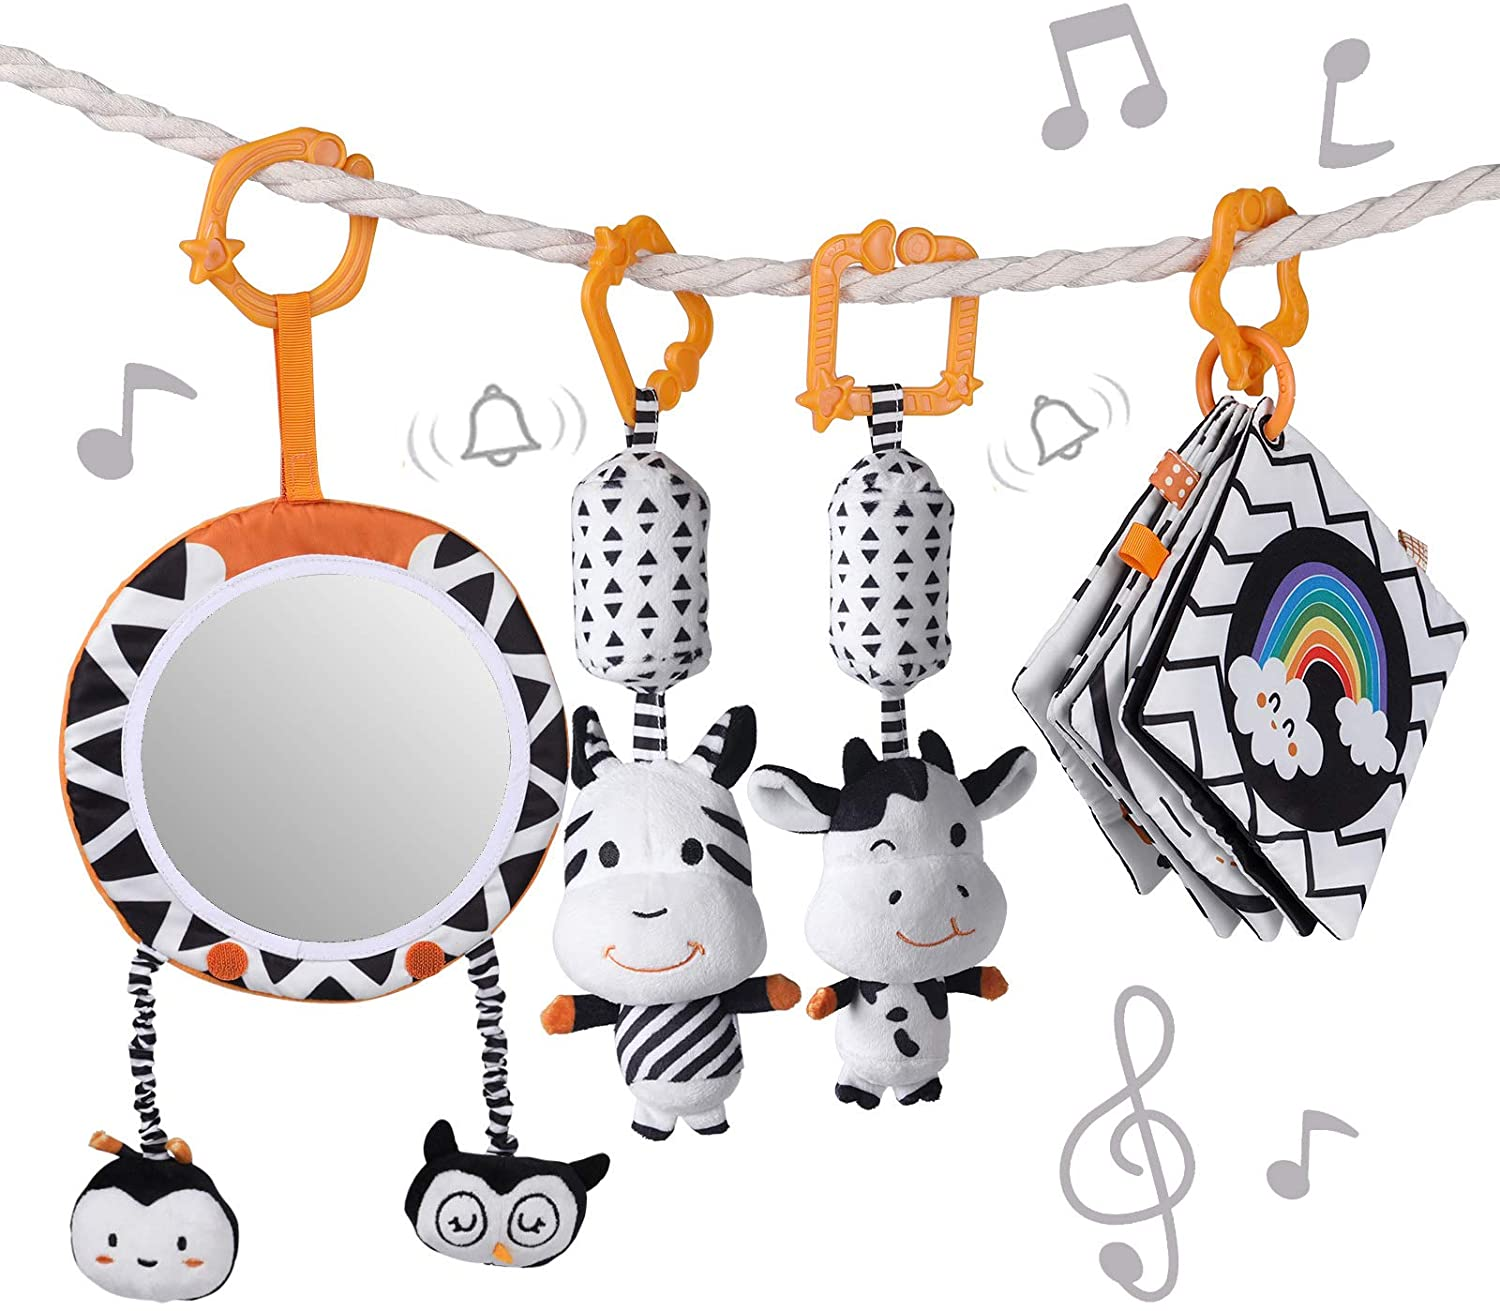 TUMAMA Baby Toys Gift Set Black and White Tummy Time Mirror Plush Rattles Rings and Crinkle Soft Cloth Book Flashcard, Car Seat Stroller Hanging Toy for 0 3 6 9 12 Months Newborn Infant Toddler